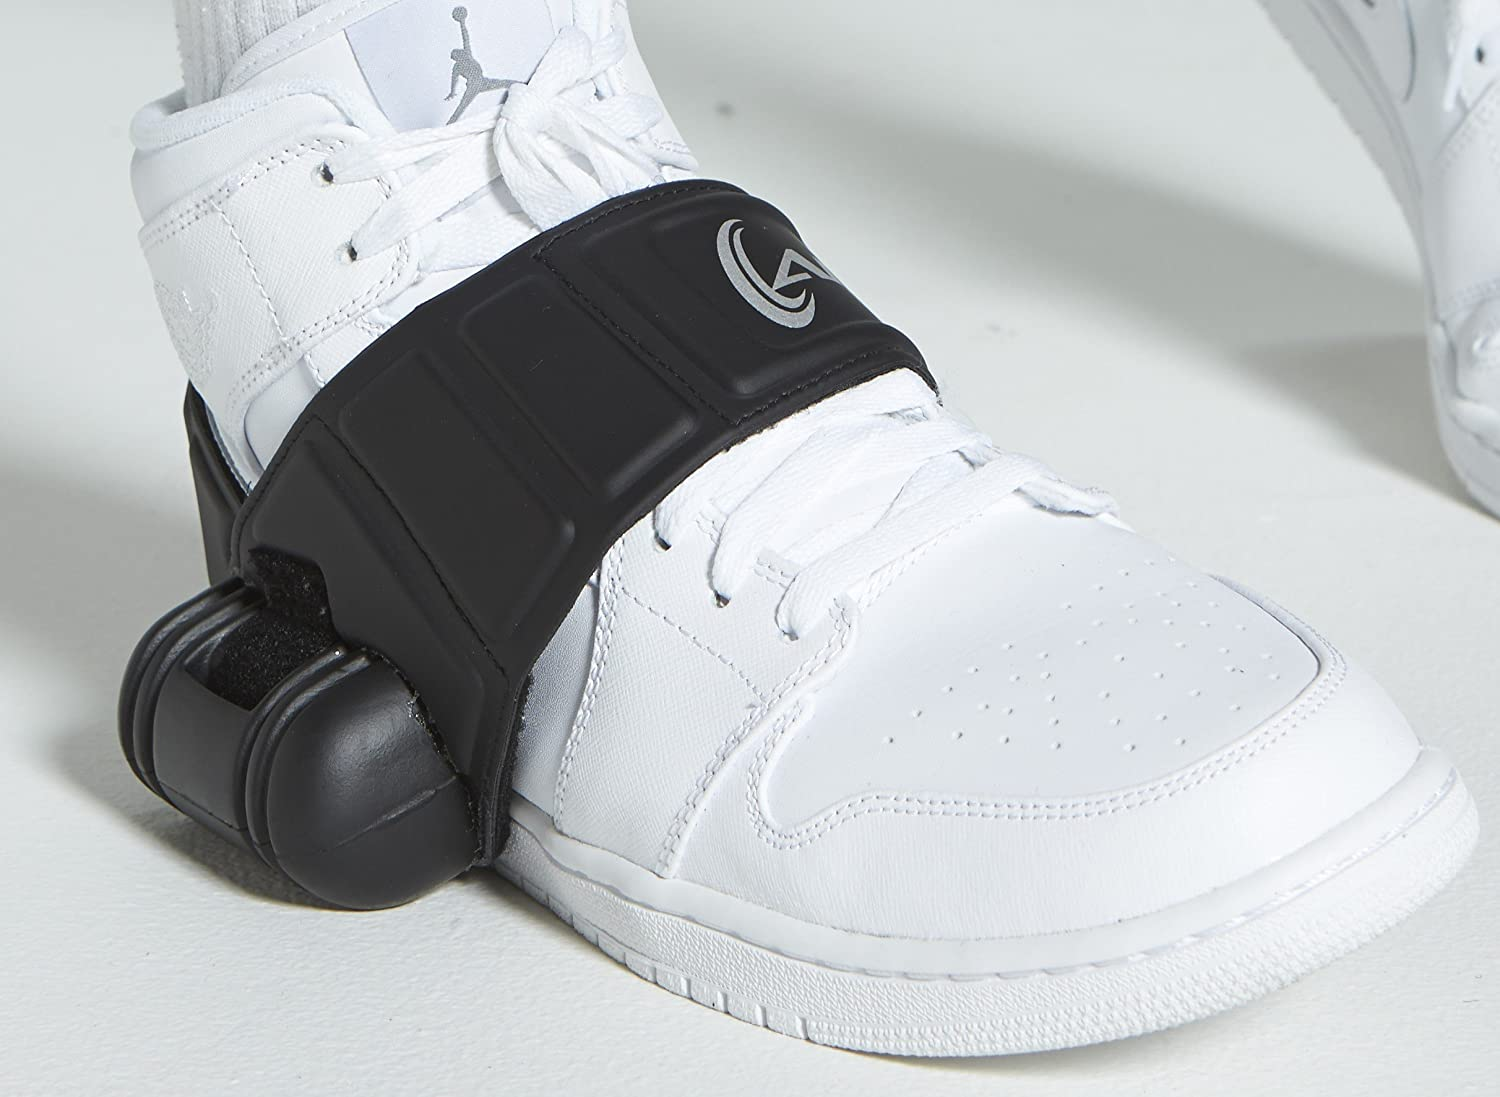 best shoes to prevent ankle rolling